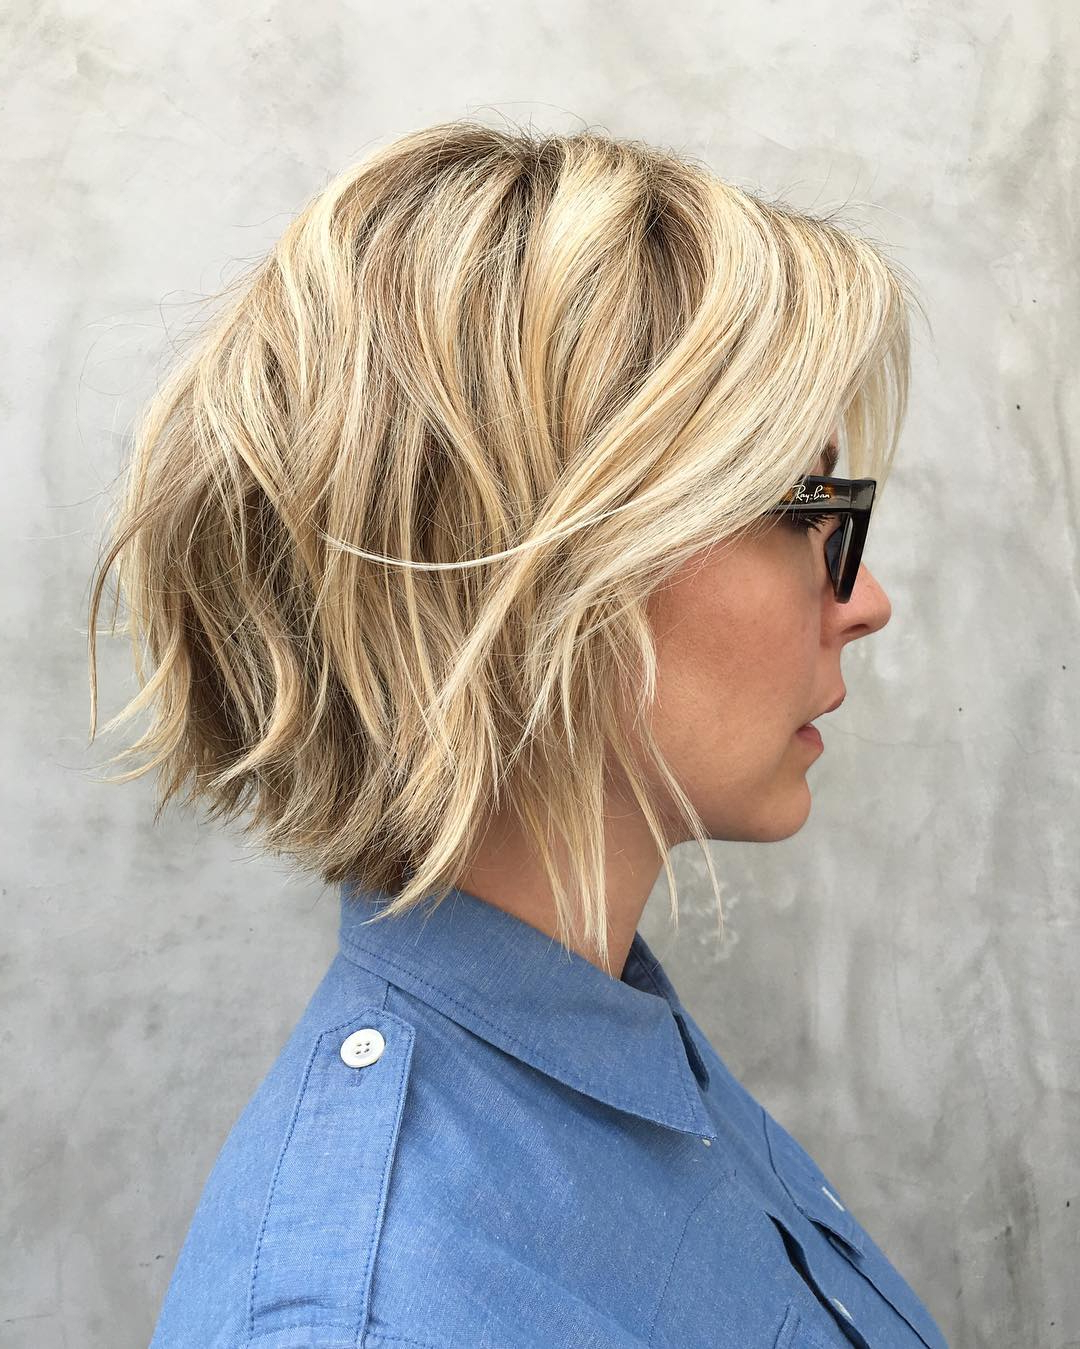 Shag Haircuts And Hairstyles In 2019 — Therighthairstyles For Short Highlighted Shaggy Haircuts (View 15 of 20)